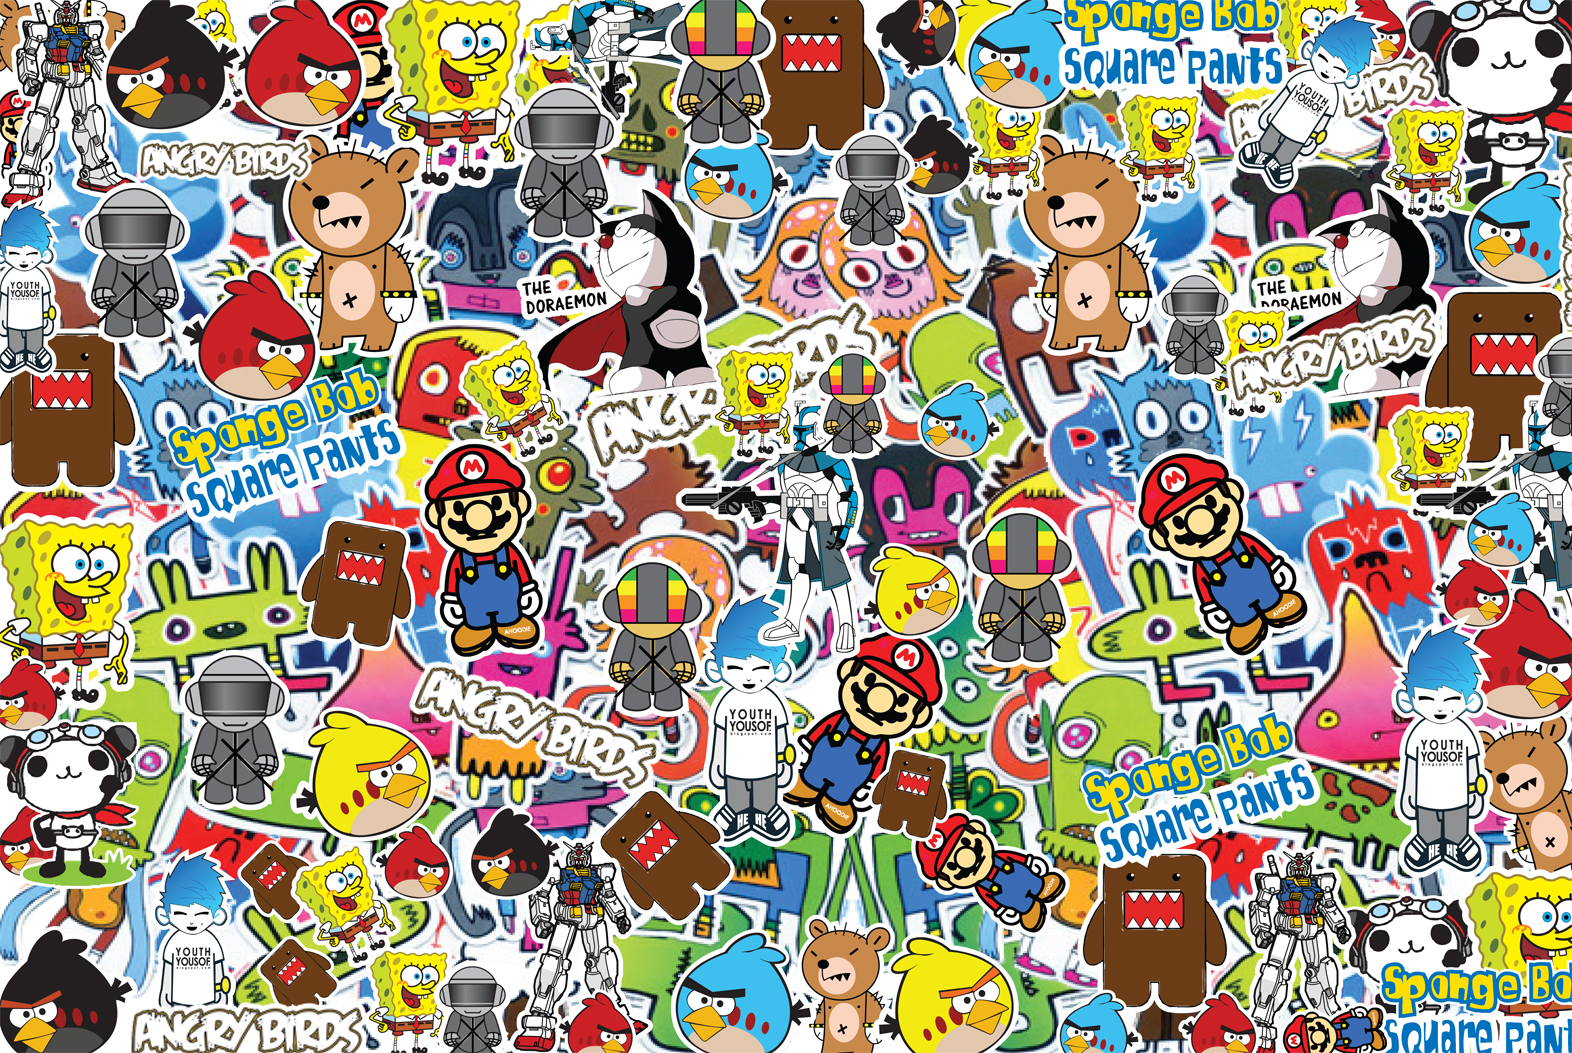 sticker bomb wallpaper cartoon - photo #30